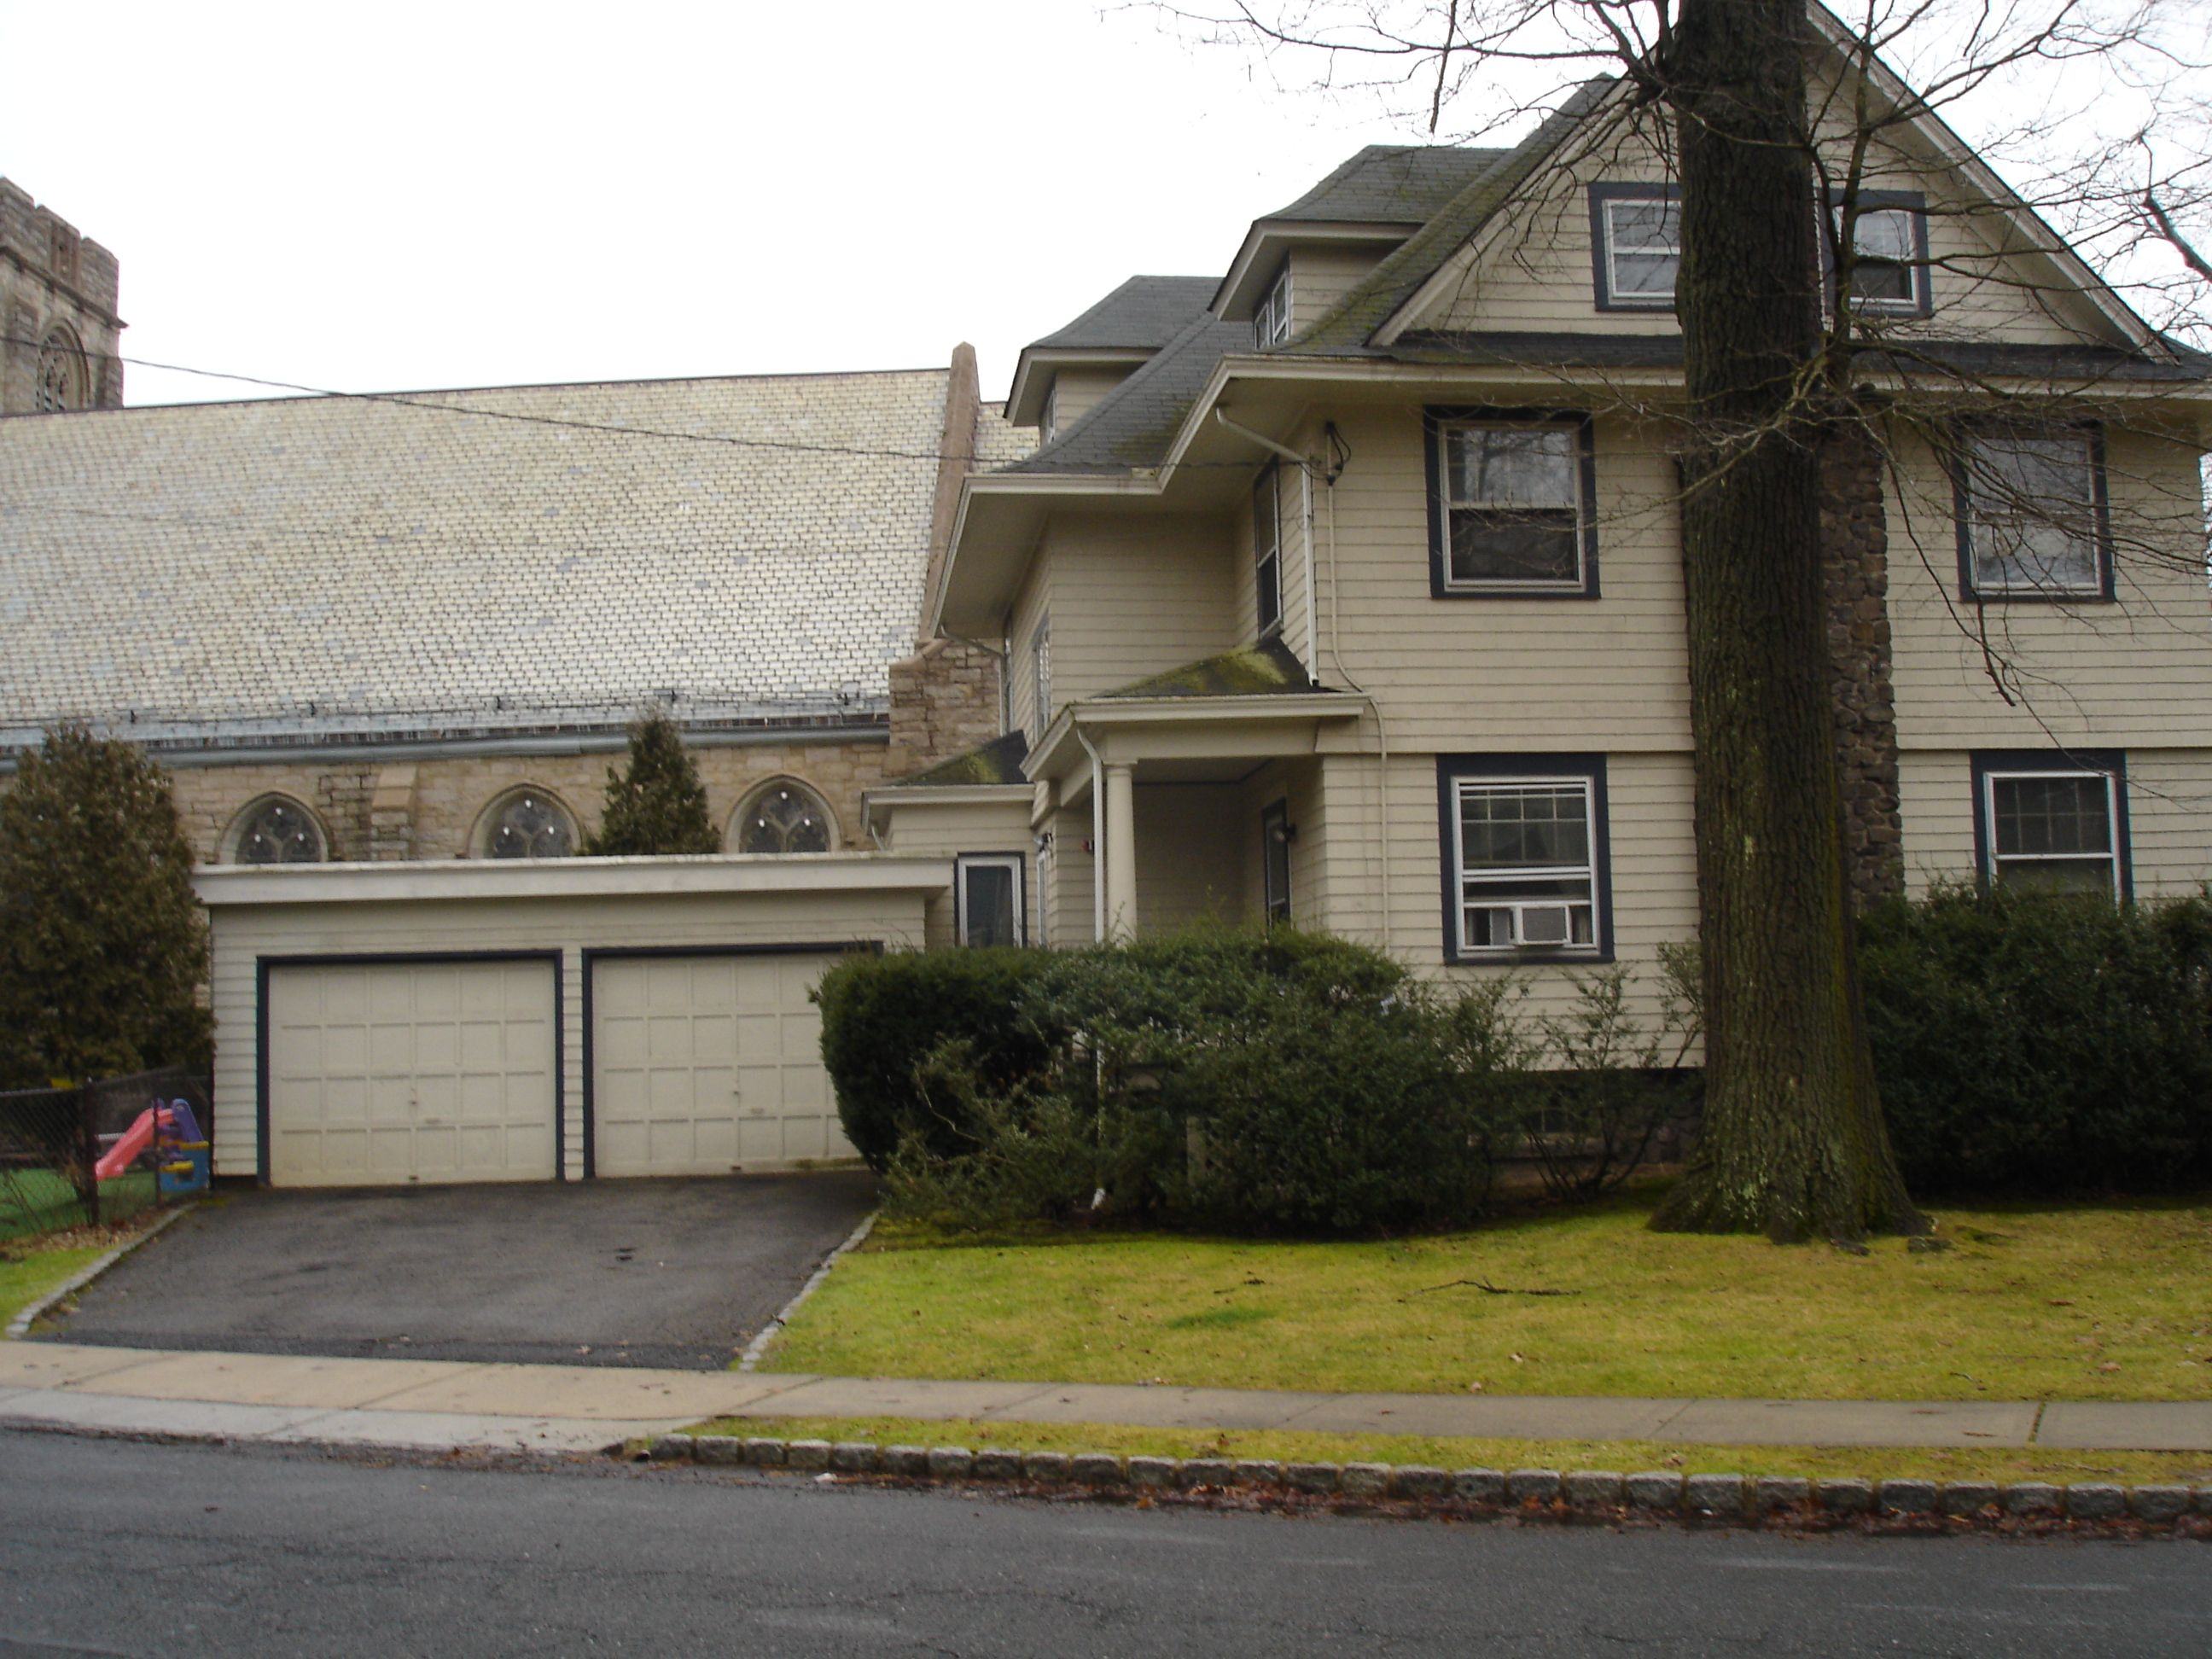 Upper Montclair Nj Home For Rent 2 250 00 Per Month Single Family 5 Bedroom 3 Story House Living Renting A House 3 Bedroom House Finding Apartments